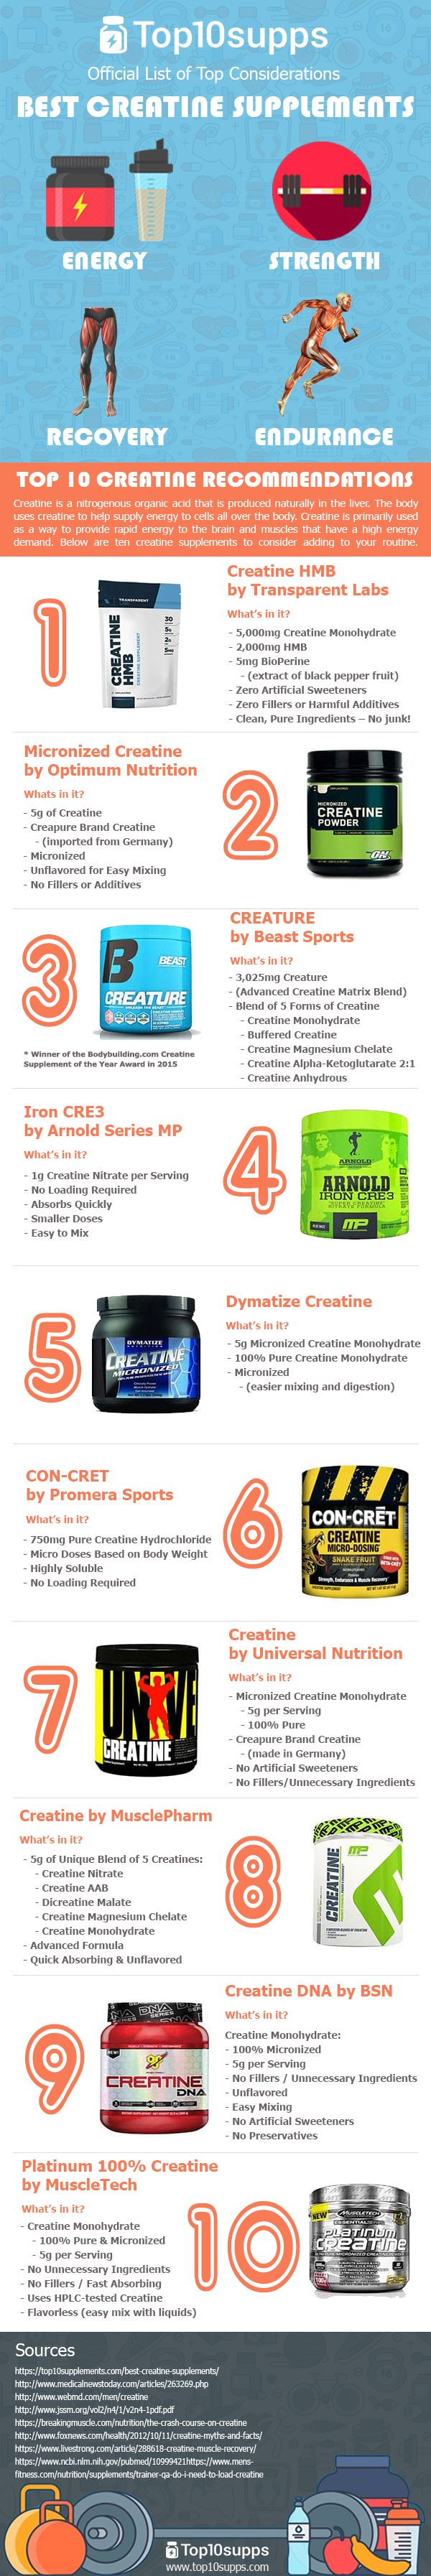 Visit the link for a full guide on Creatine. Creatine can help the body to deliver energy to the cells that need it the most. In the case of a weightlifting session, the cells that need energy the most are the muscle tissue cells that are straining to get in that last rep.